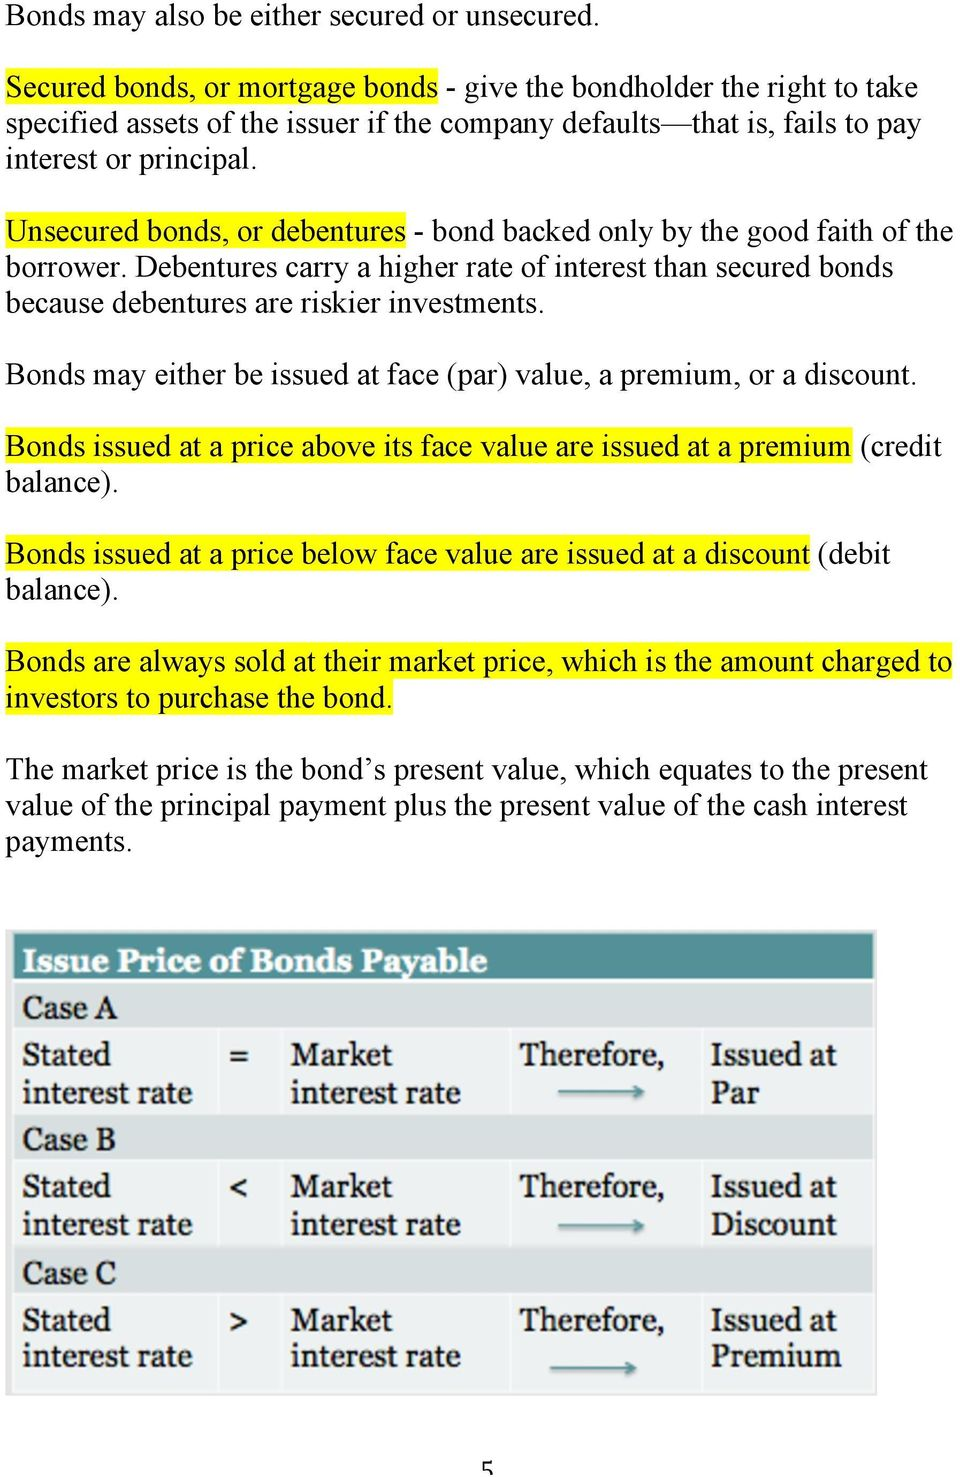 Unsecured bonds, or debentures - bond backed only by the good faith of the borrower. Debentures carry a higher rate of interest than secured bonds because debentures are riskier investments.